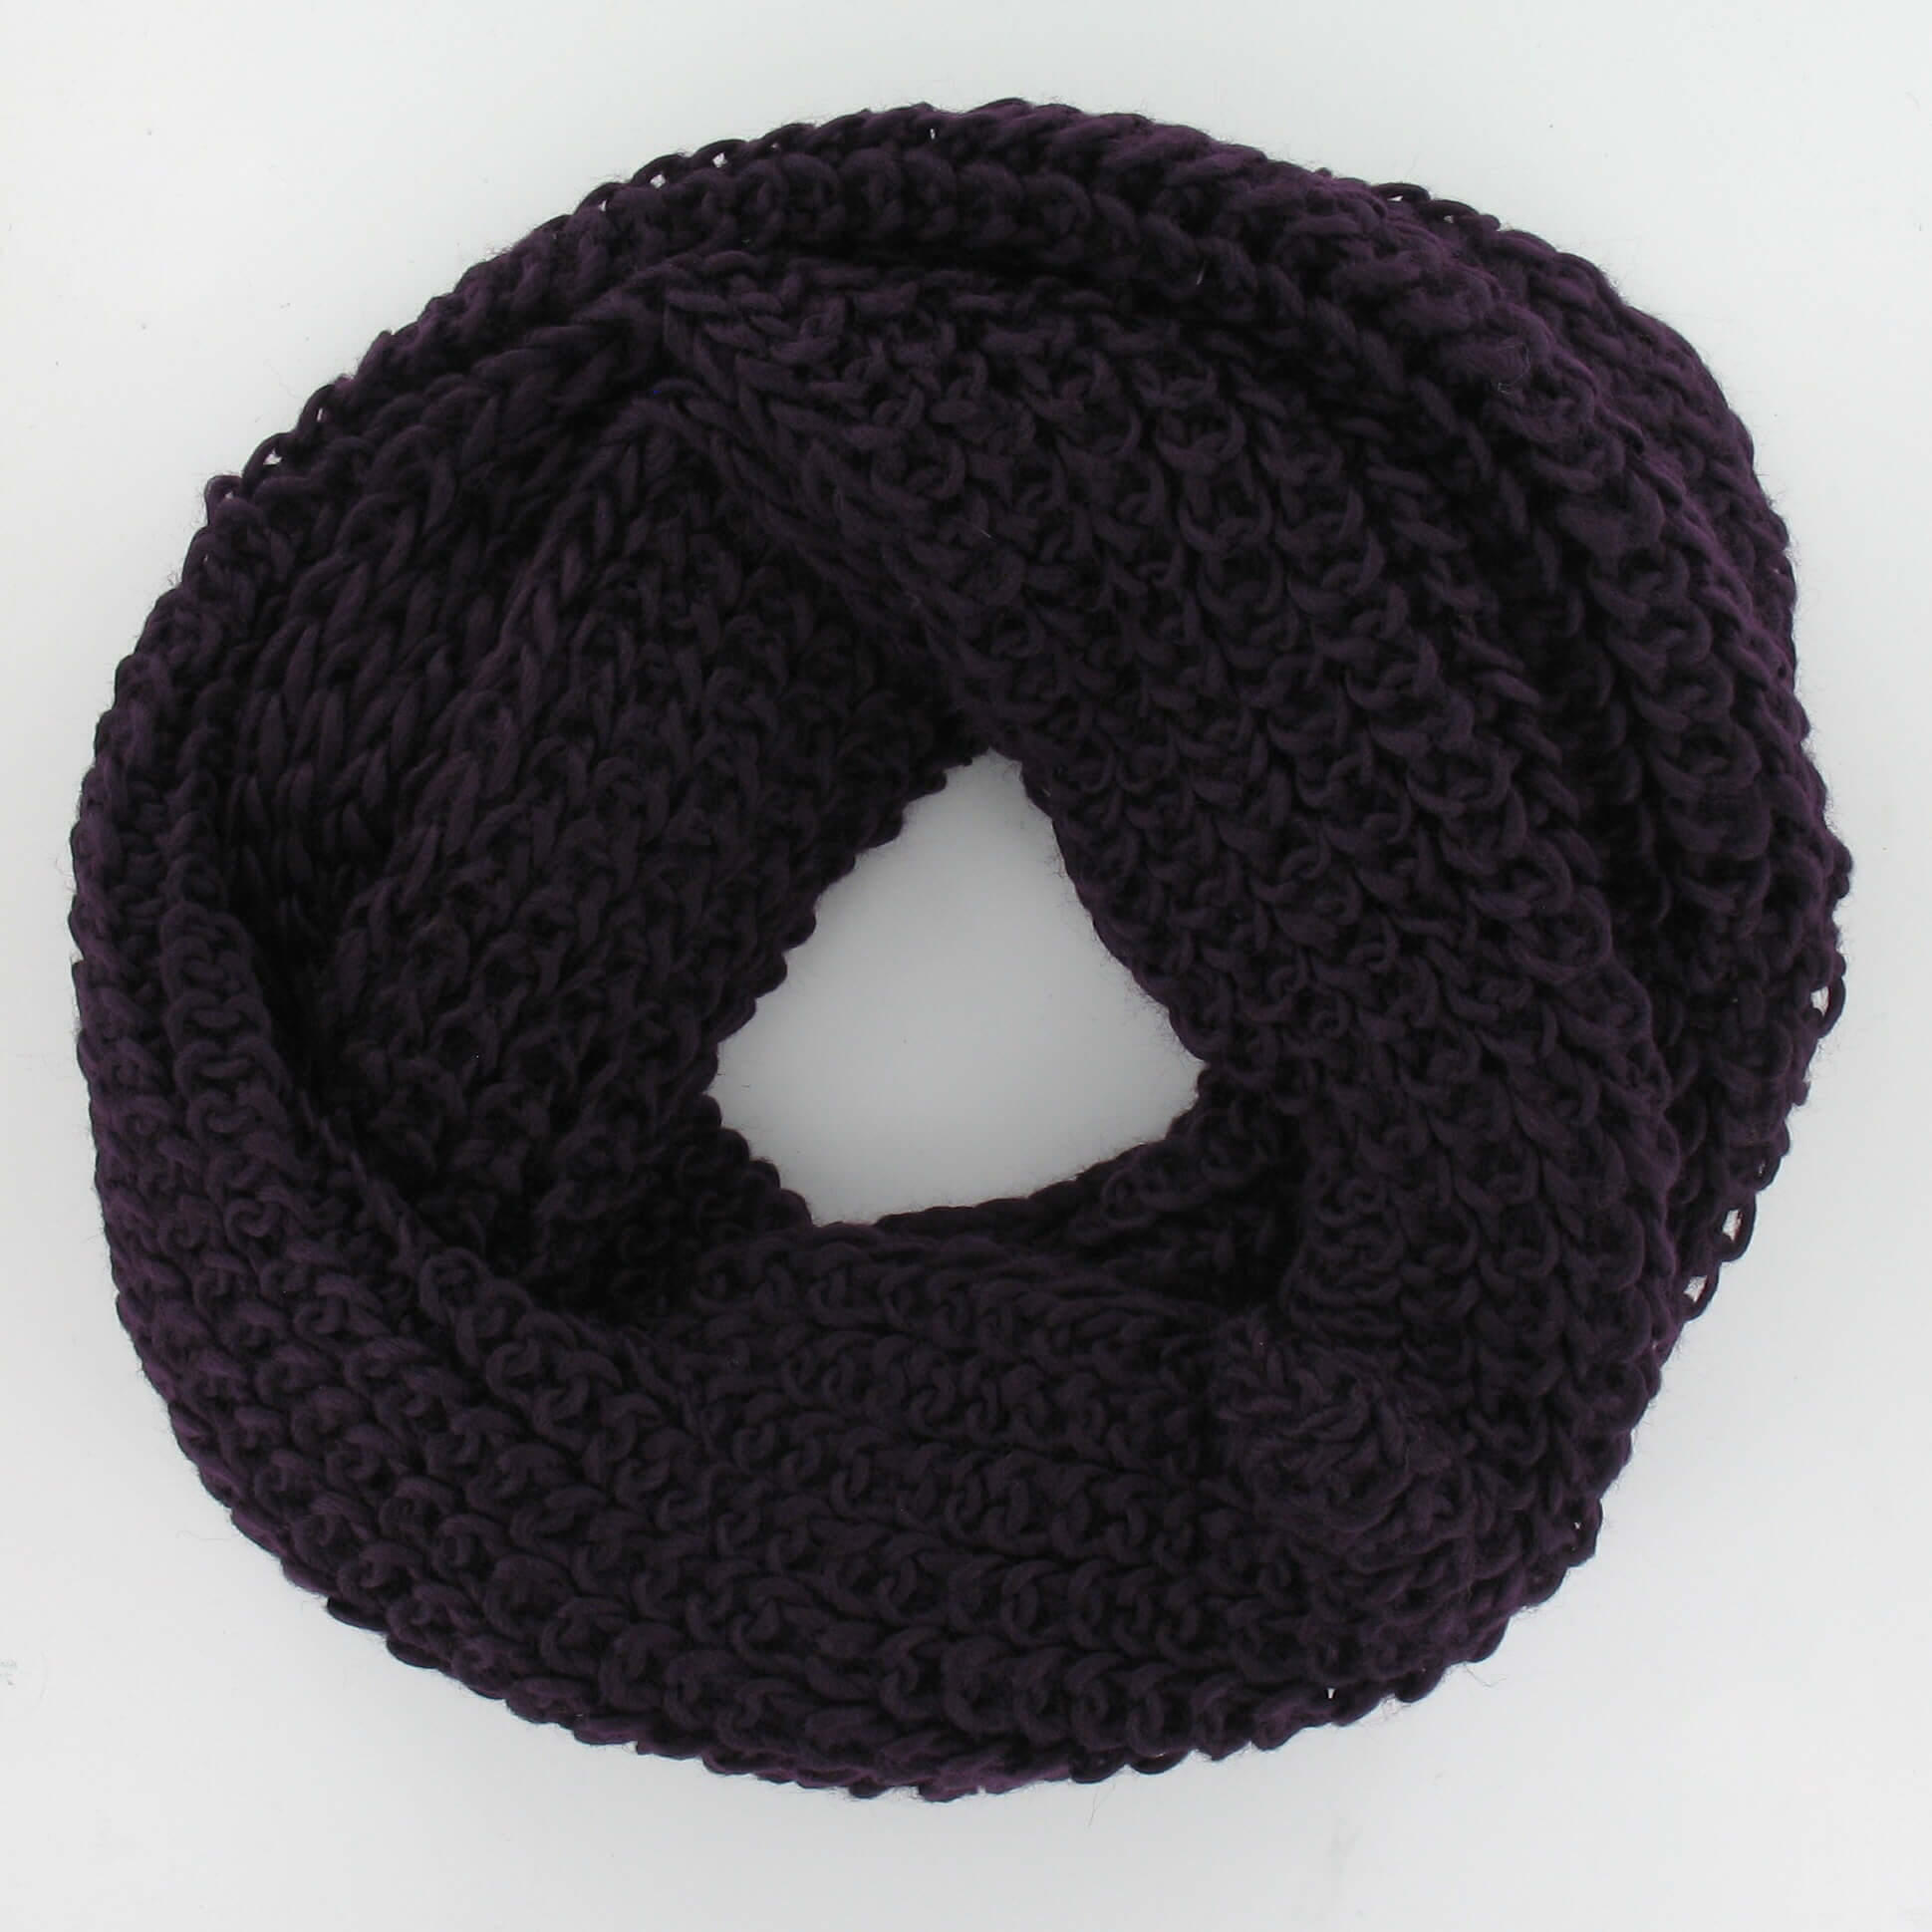 Snood in Plum